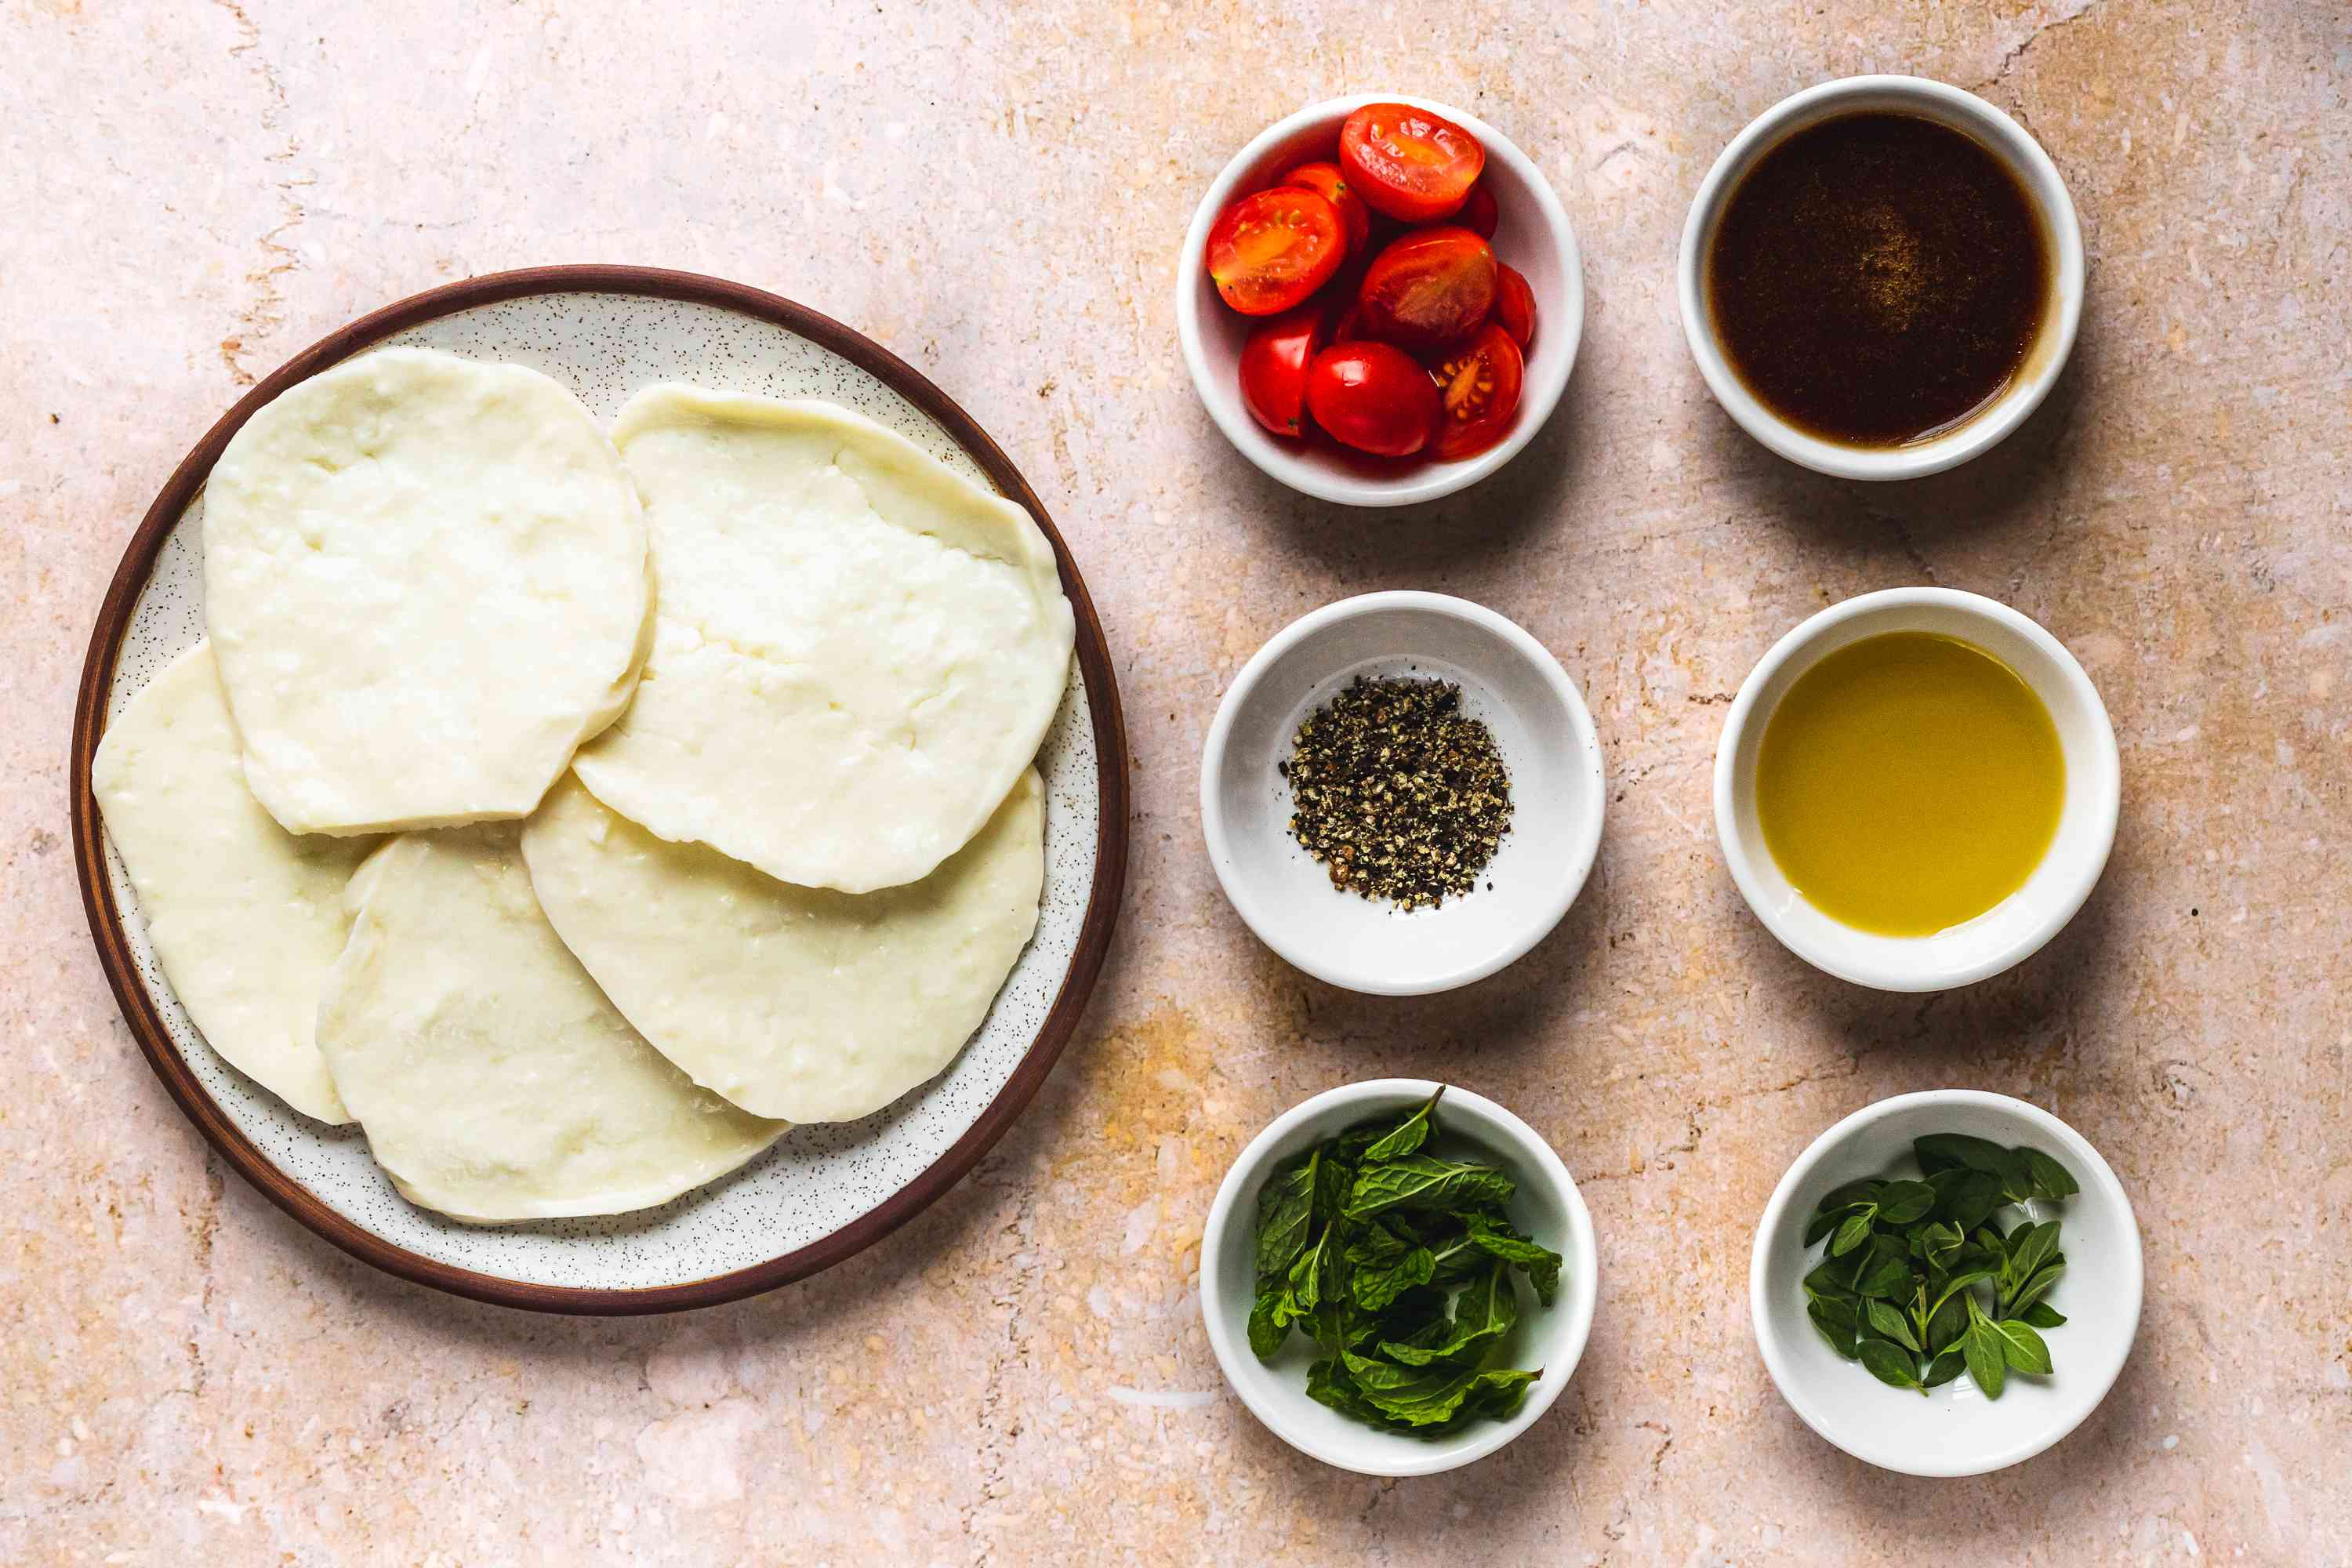 3-Minute Fried Halloumi Cheese Meze ingredients